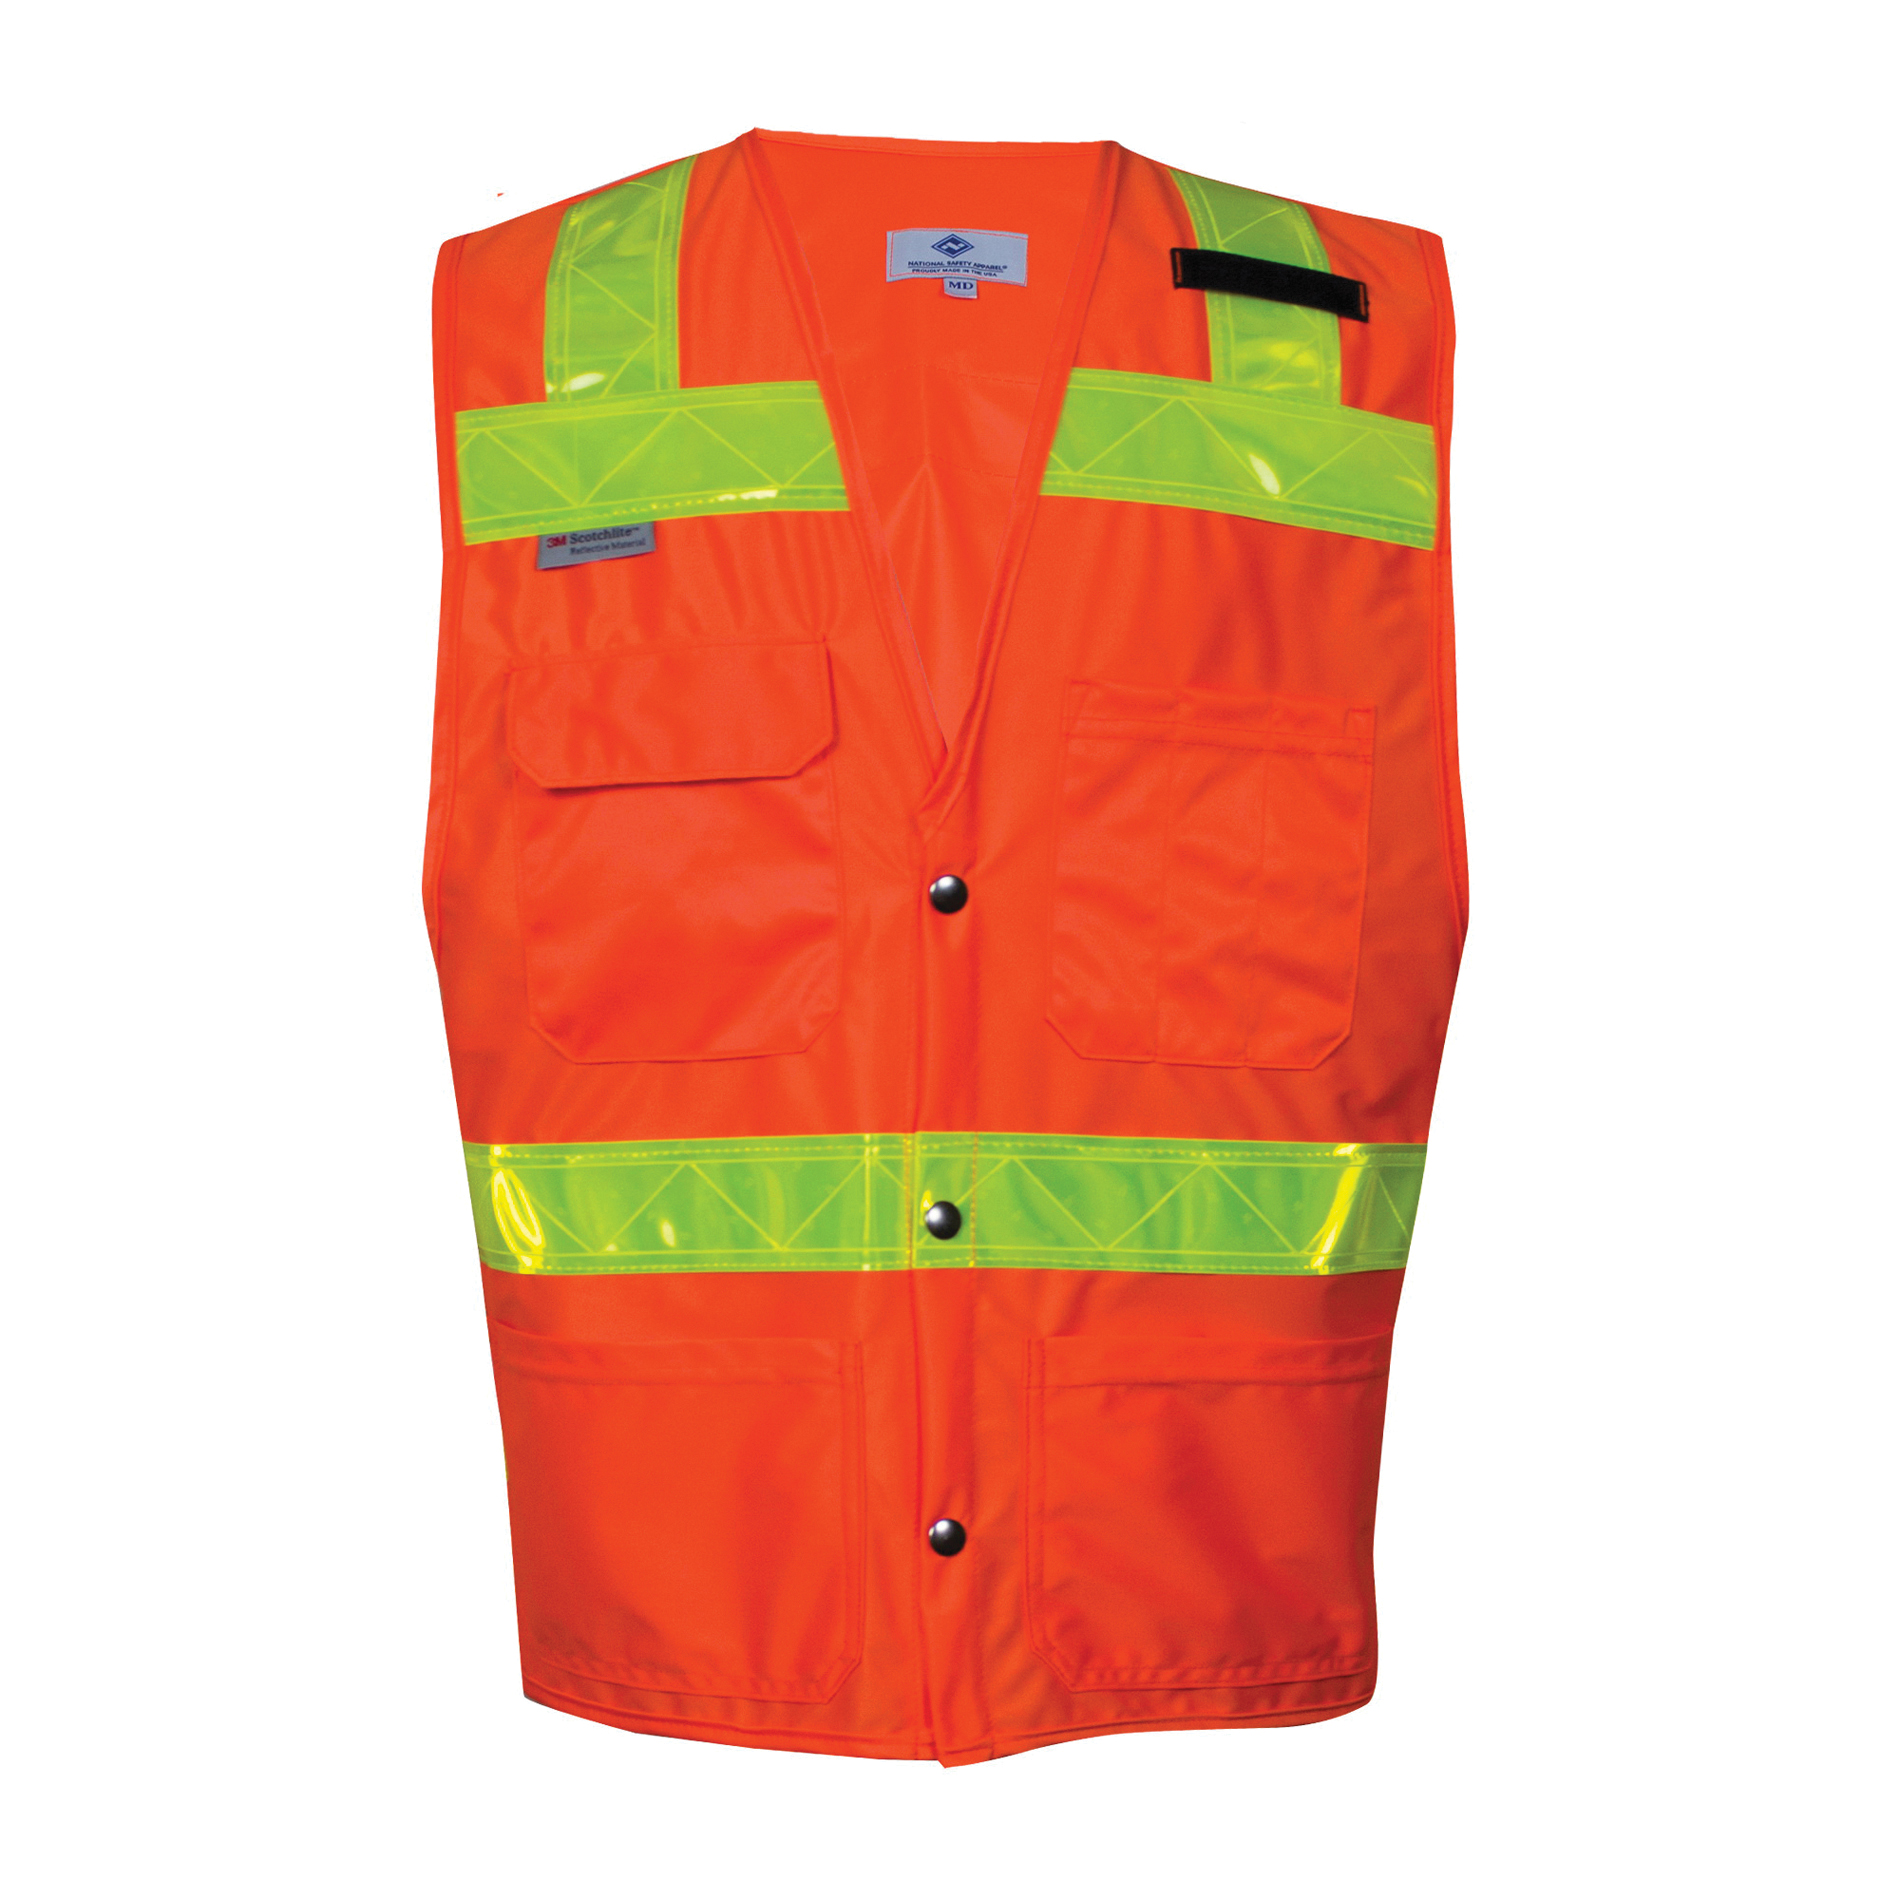 VIZABLE® VNT8016-5X VNT8016 Series Survey and Construction Mesh Safety Vest, 5X-Large, High Visibility Fluorescent Yellow, 3 oz Breathable Polyester Micro Mesh, Snap Front Closure